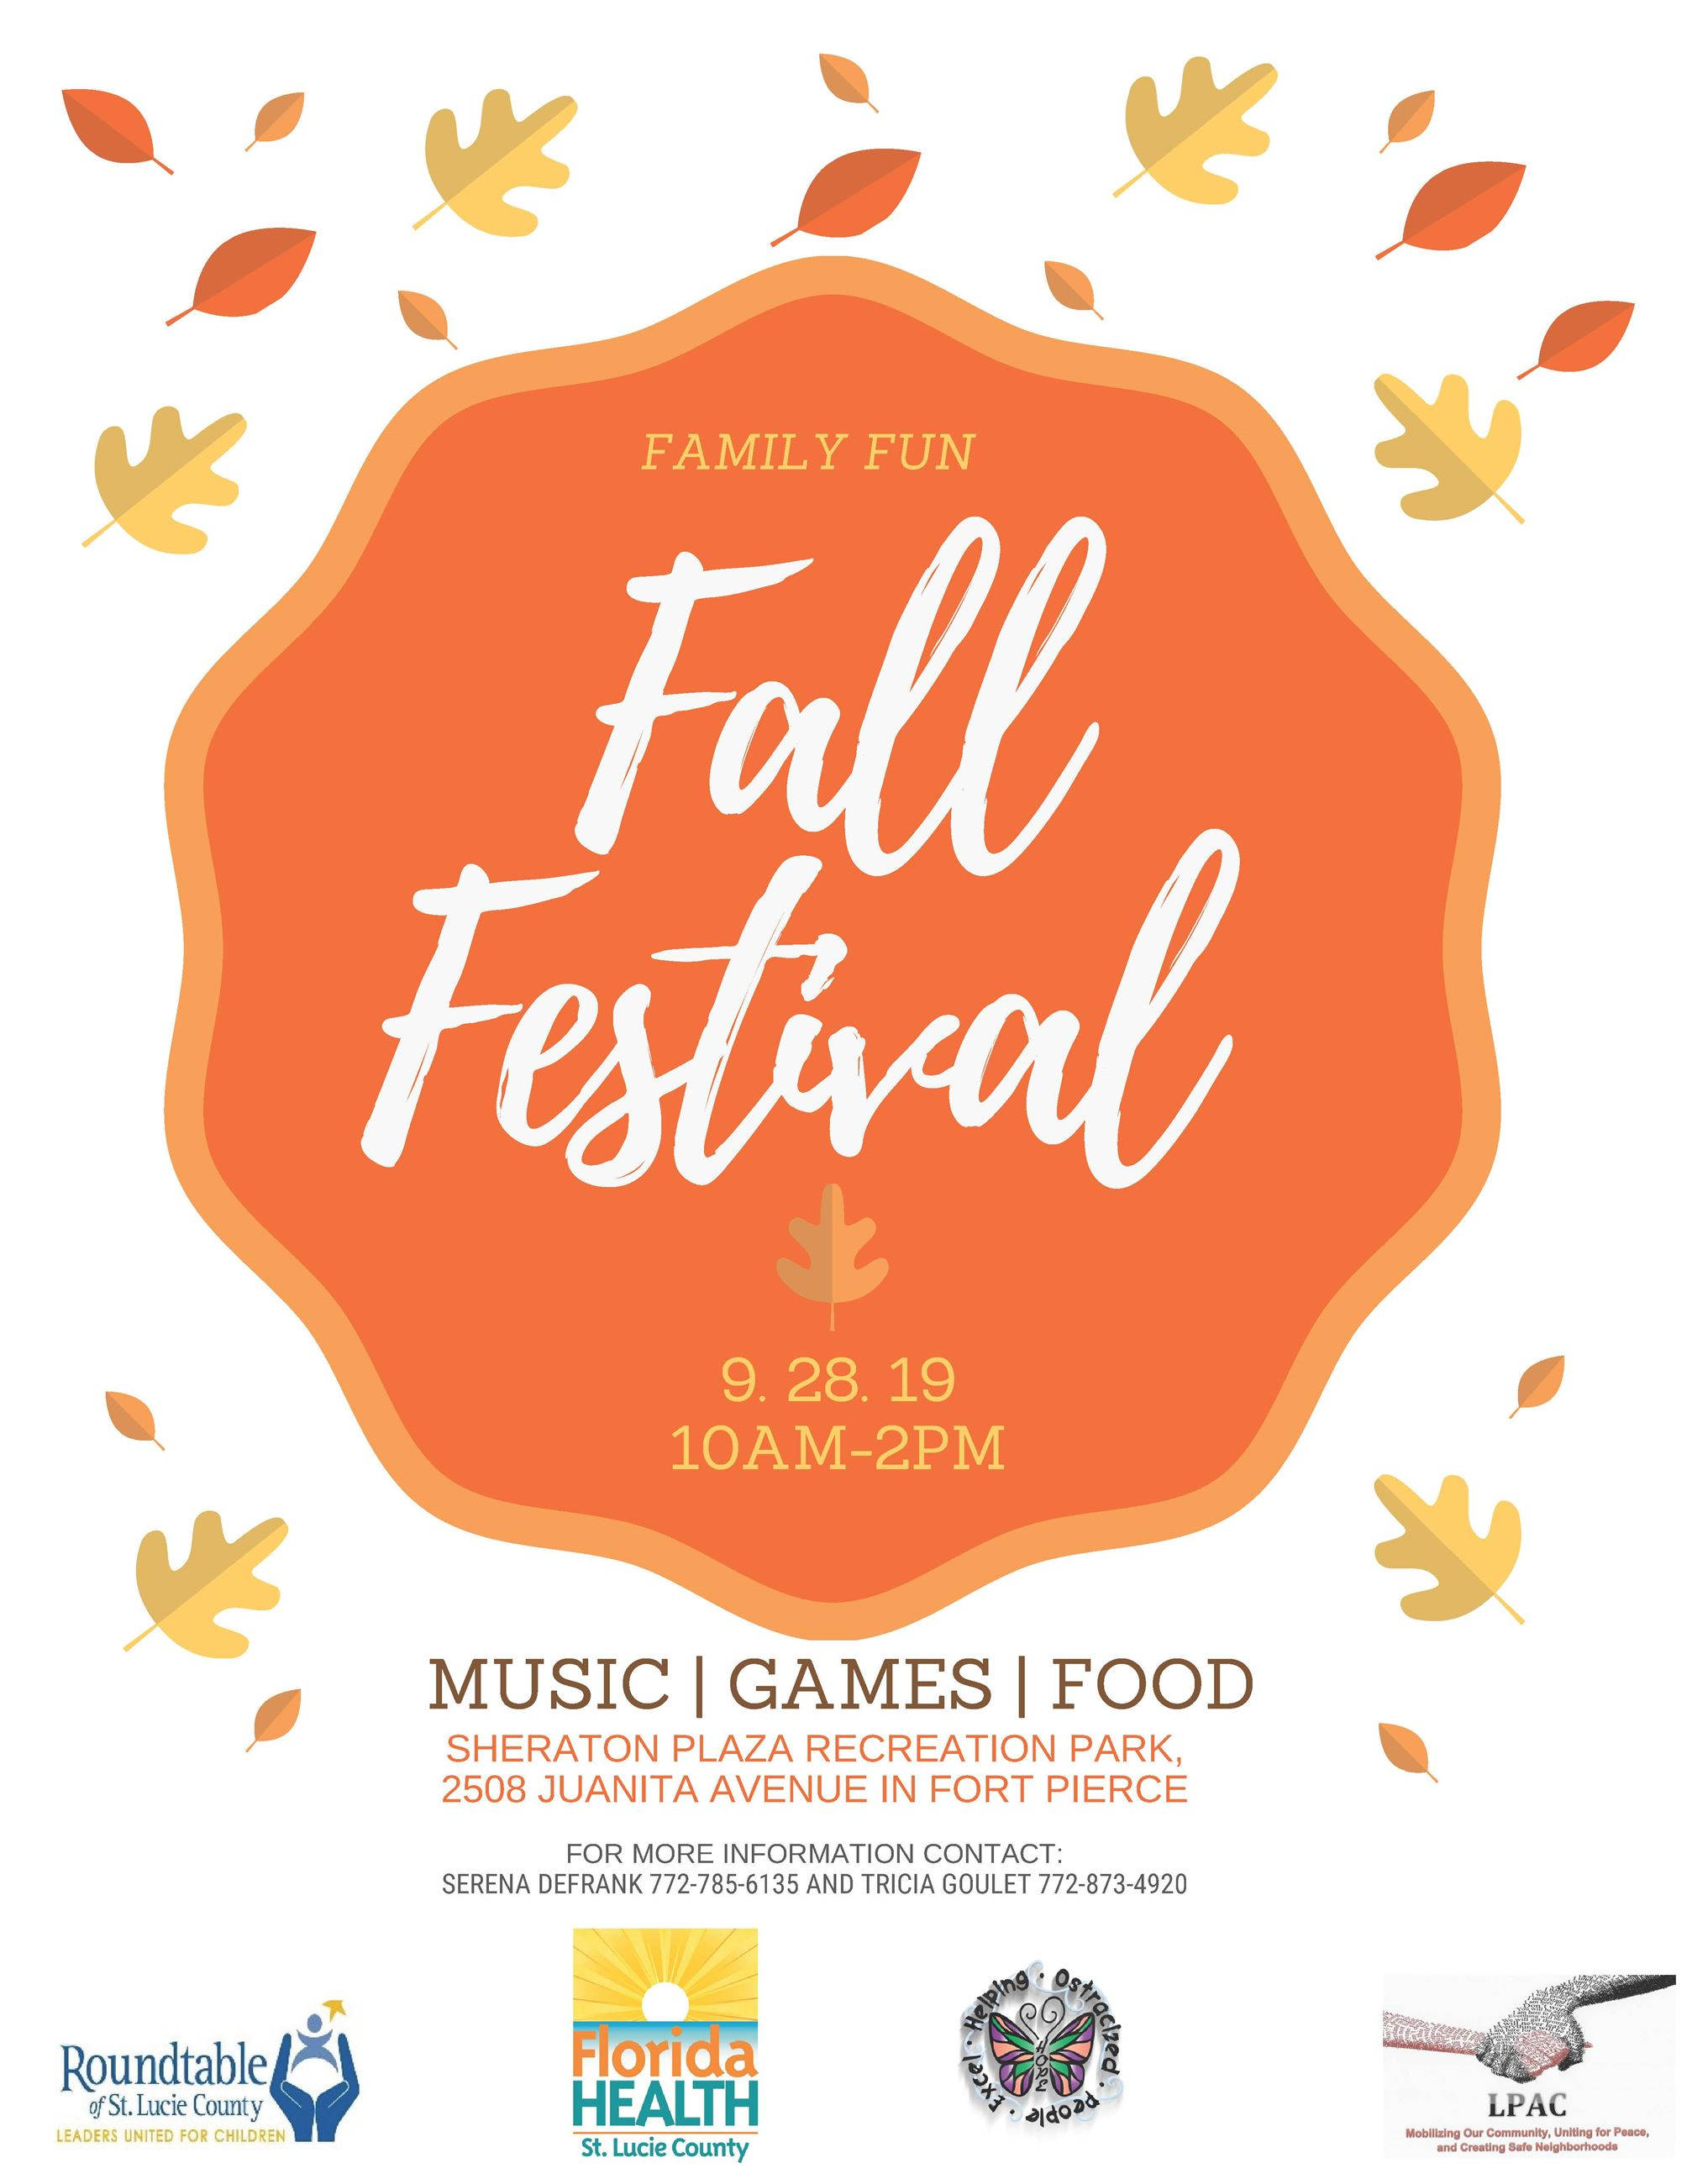 LPAC fall festival day September 28th